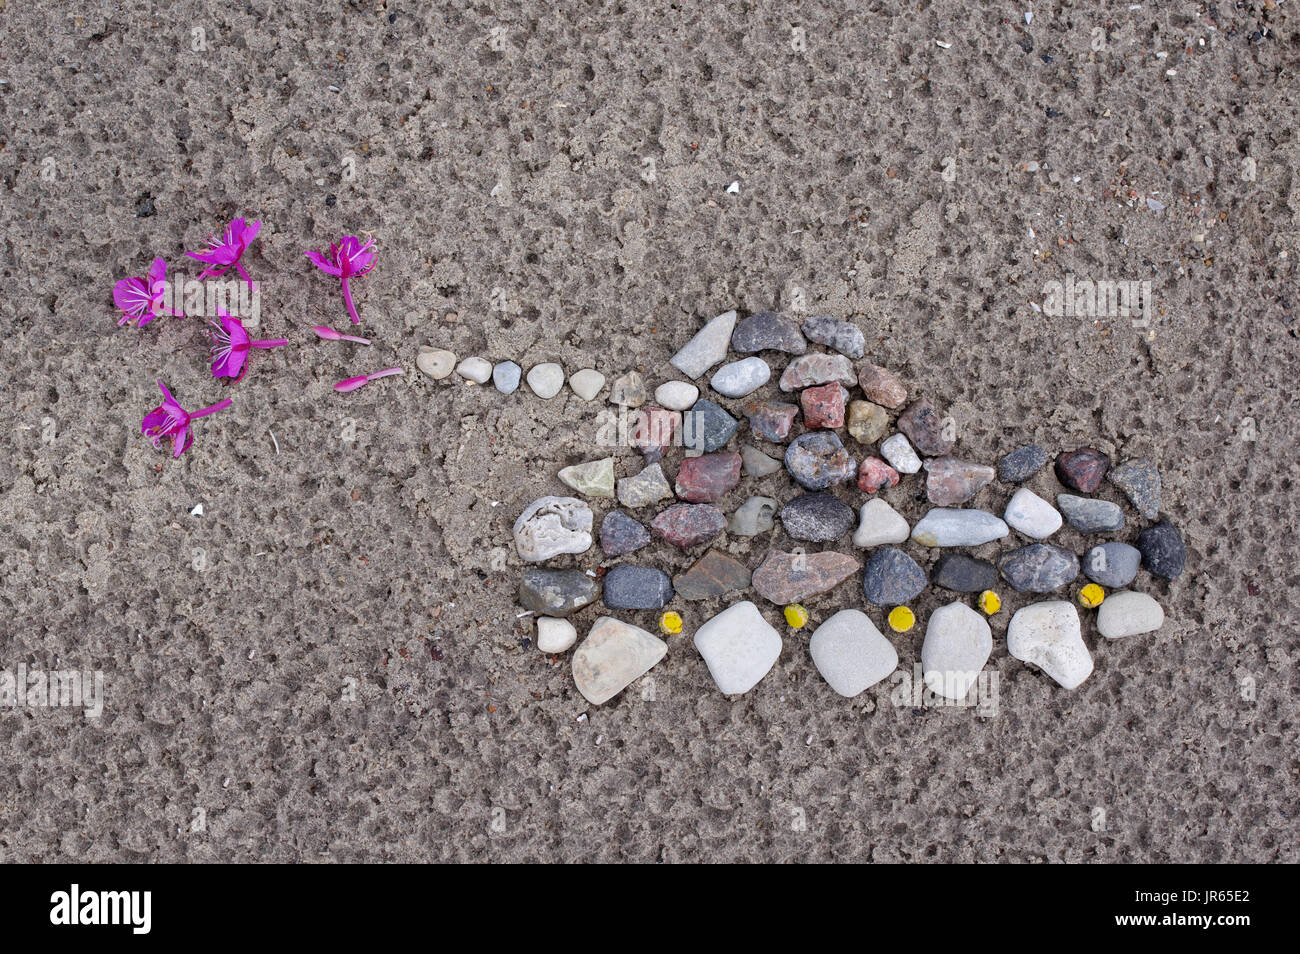 Small stones made tank that shoots the blossoms. - Stock Image